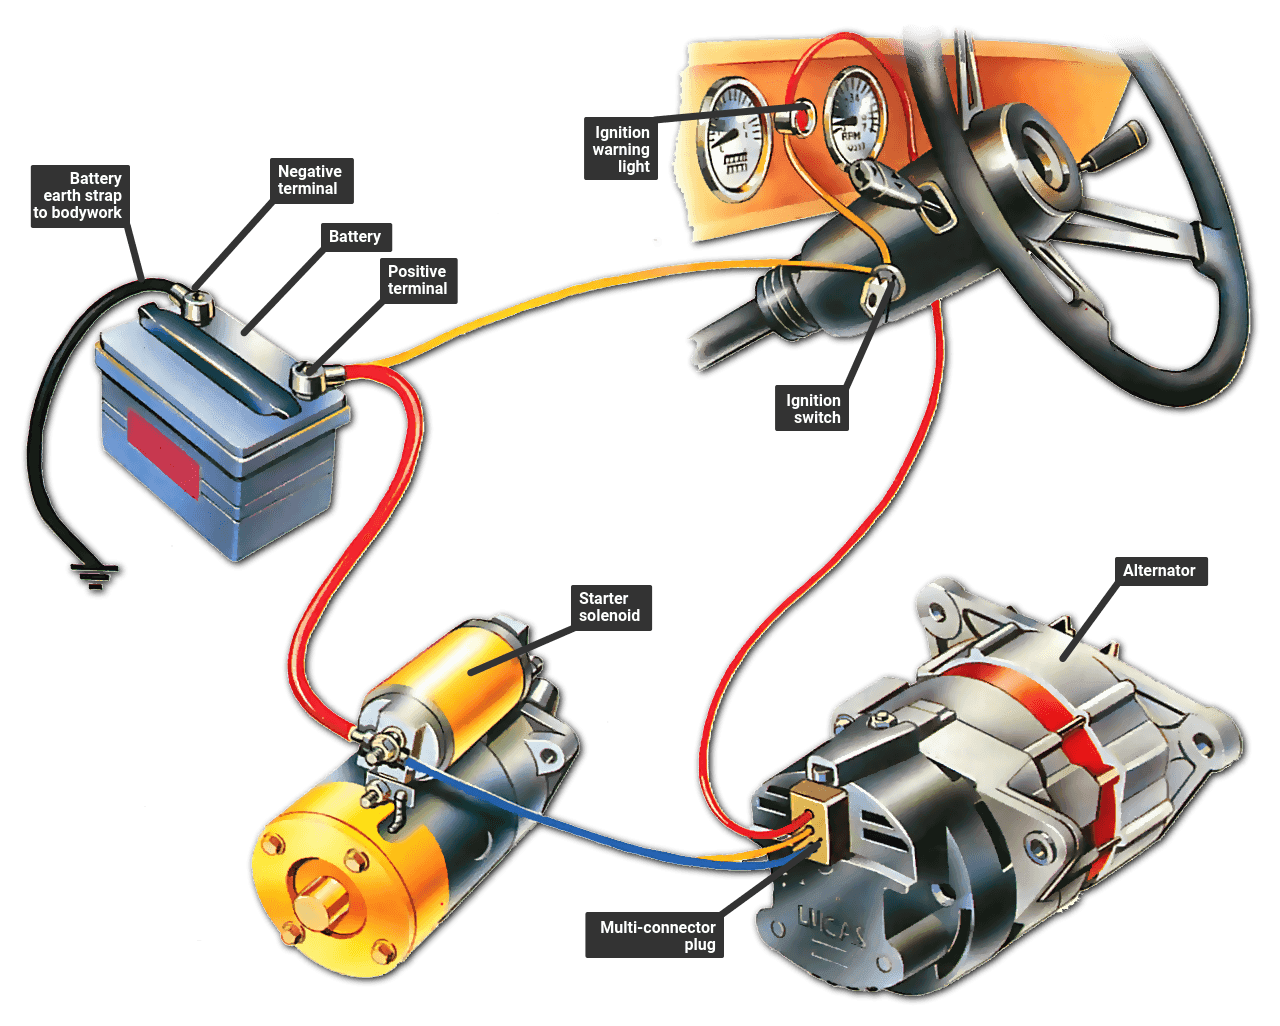 Troubleshooting The Ignition Warning Light How A Car Works Wiring Circuit Diagram